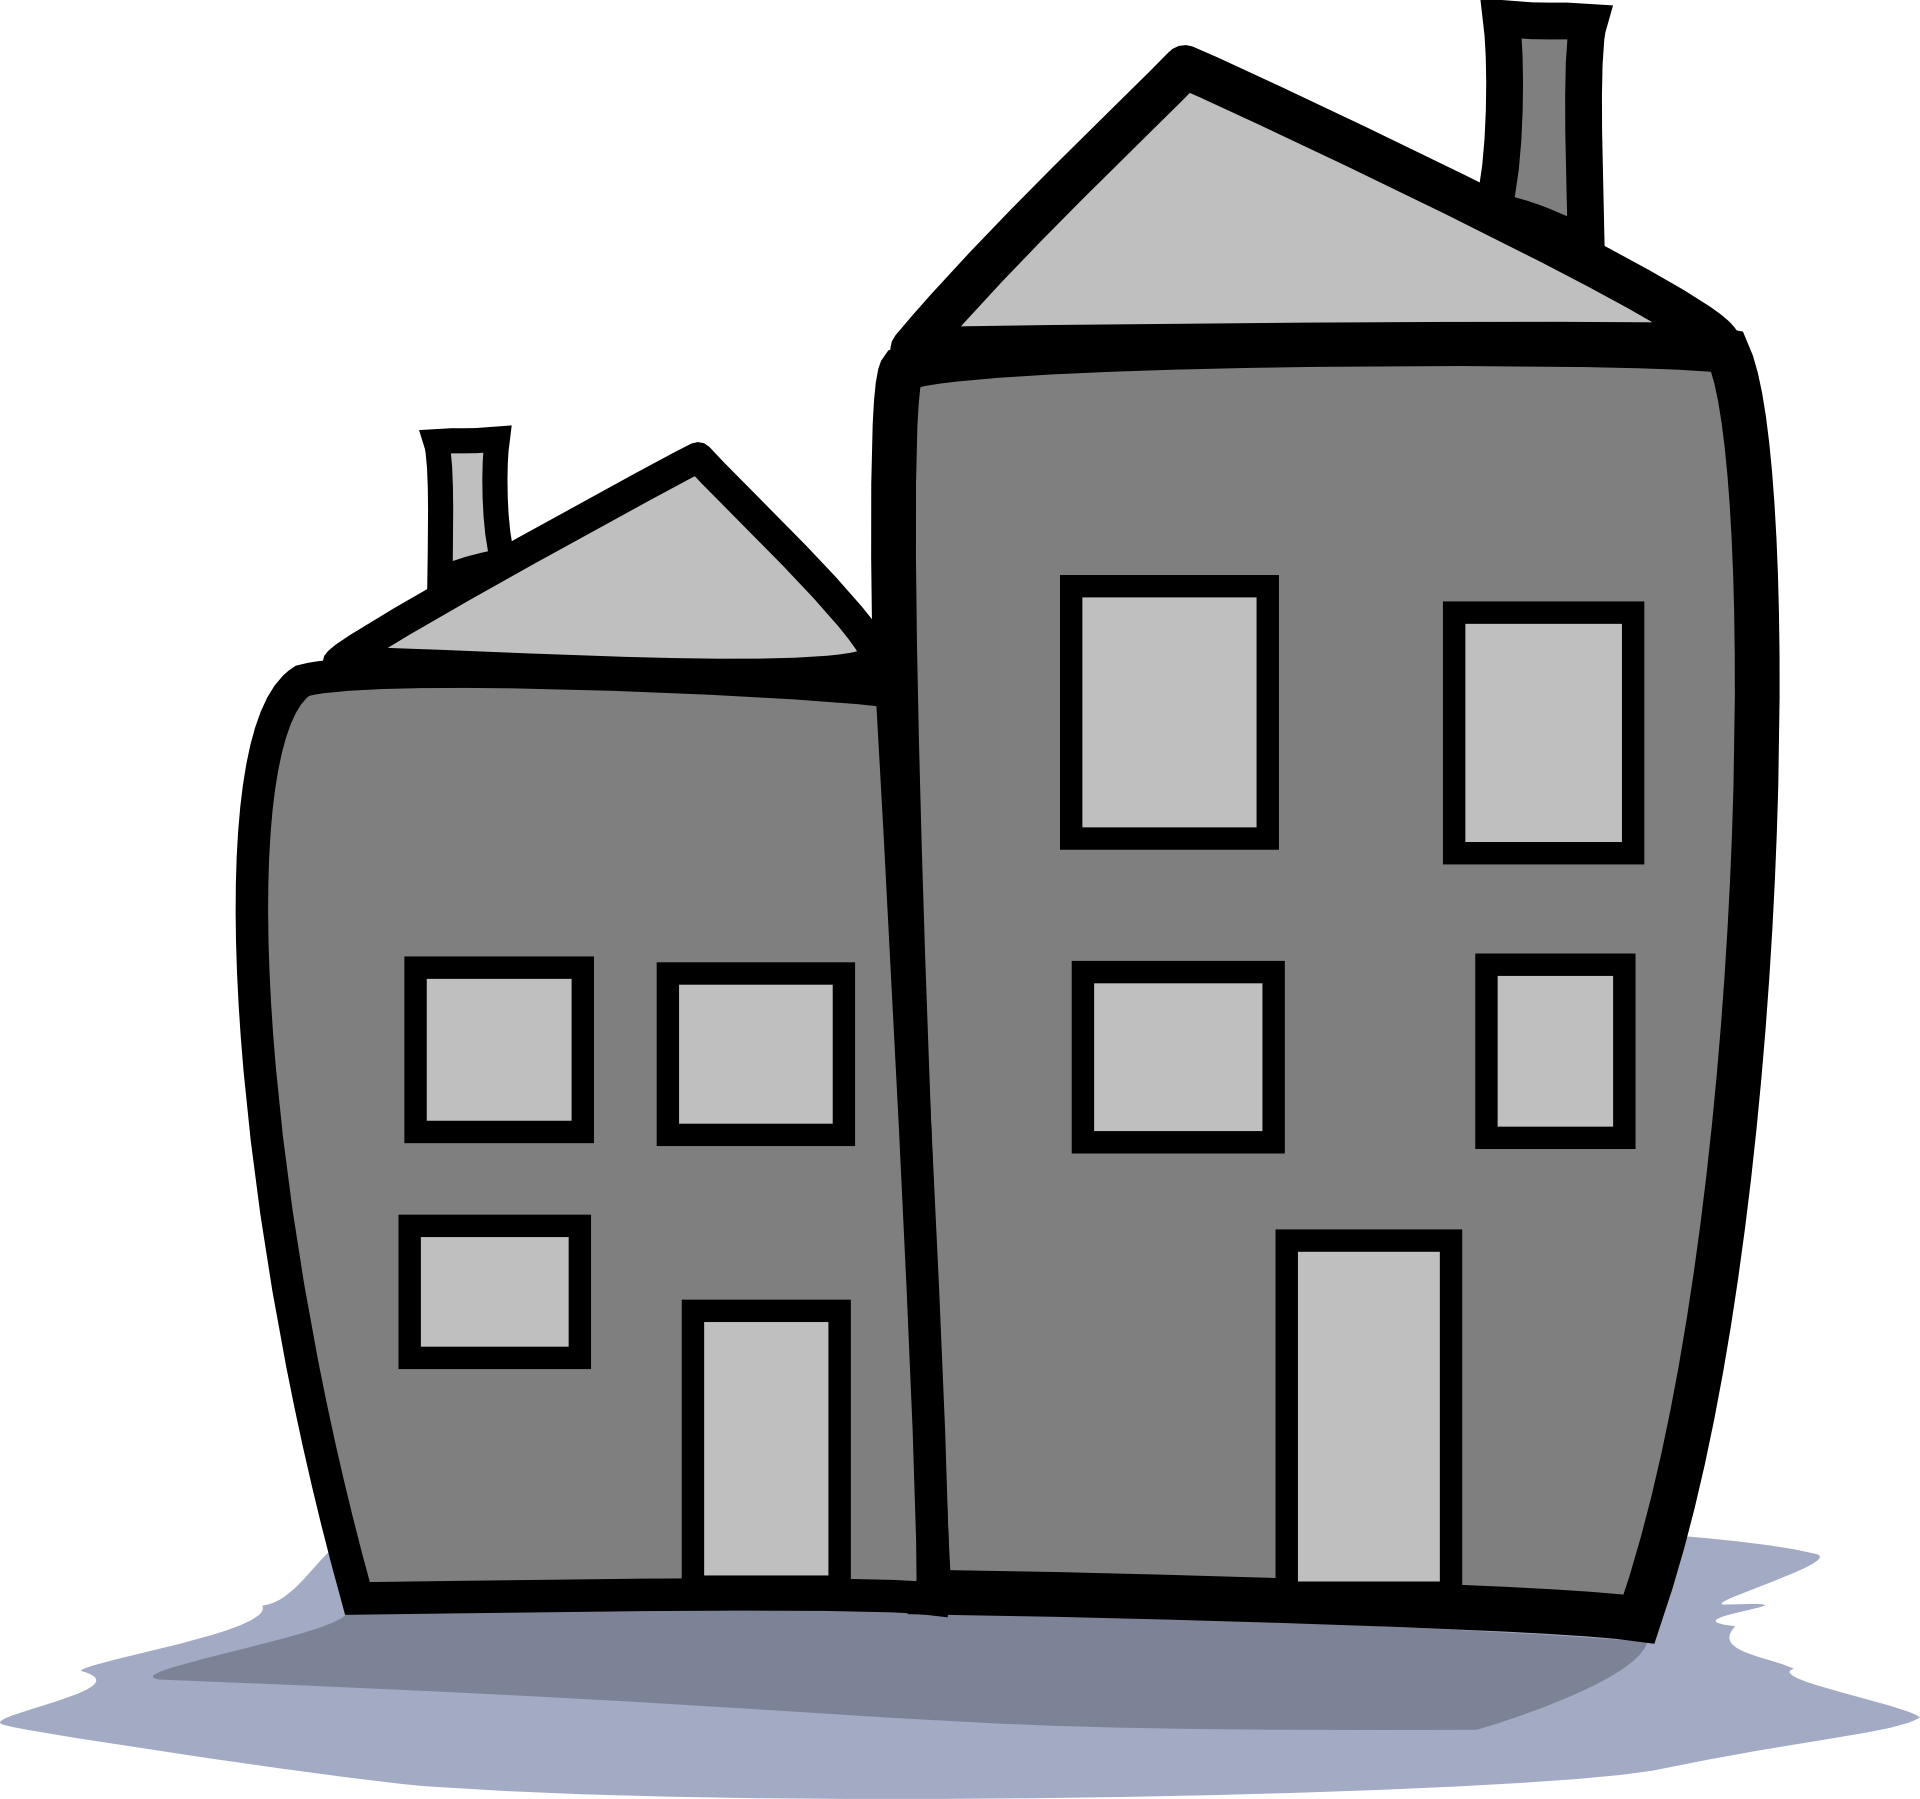 Cute house clipart free images - ClipartBarn